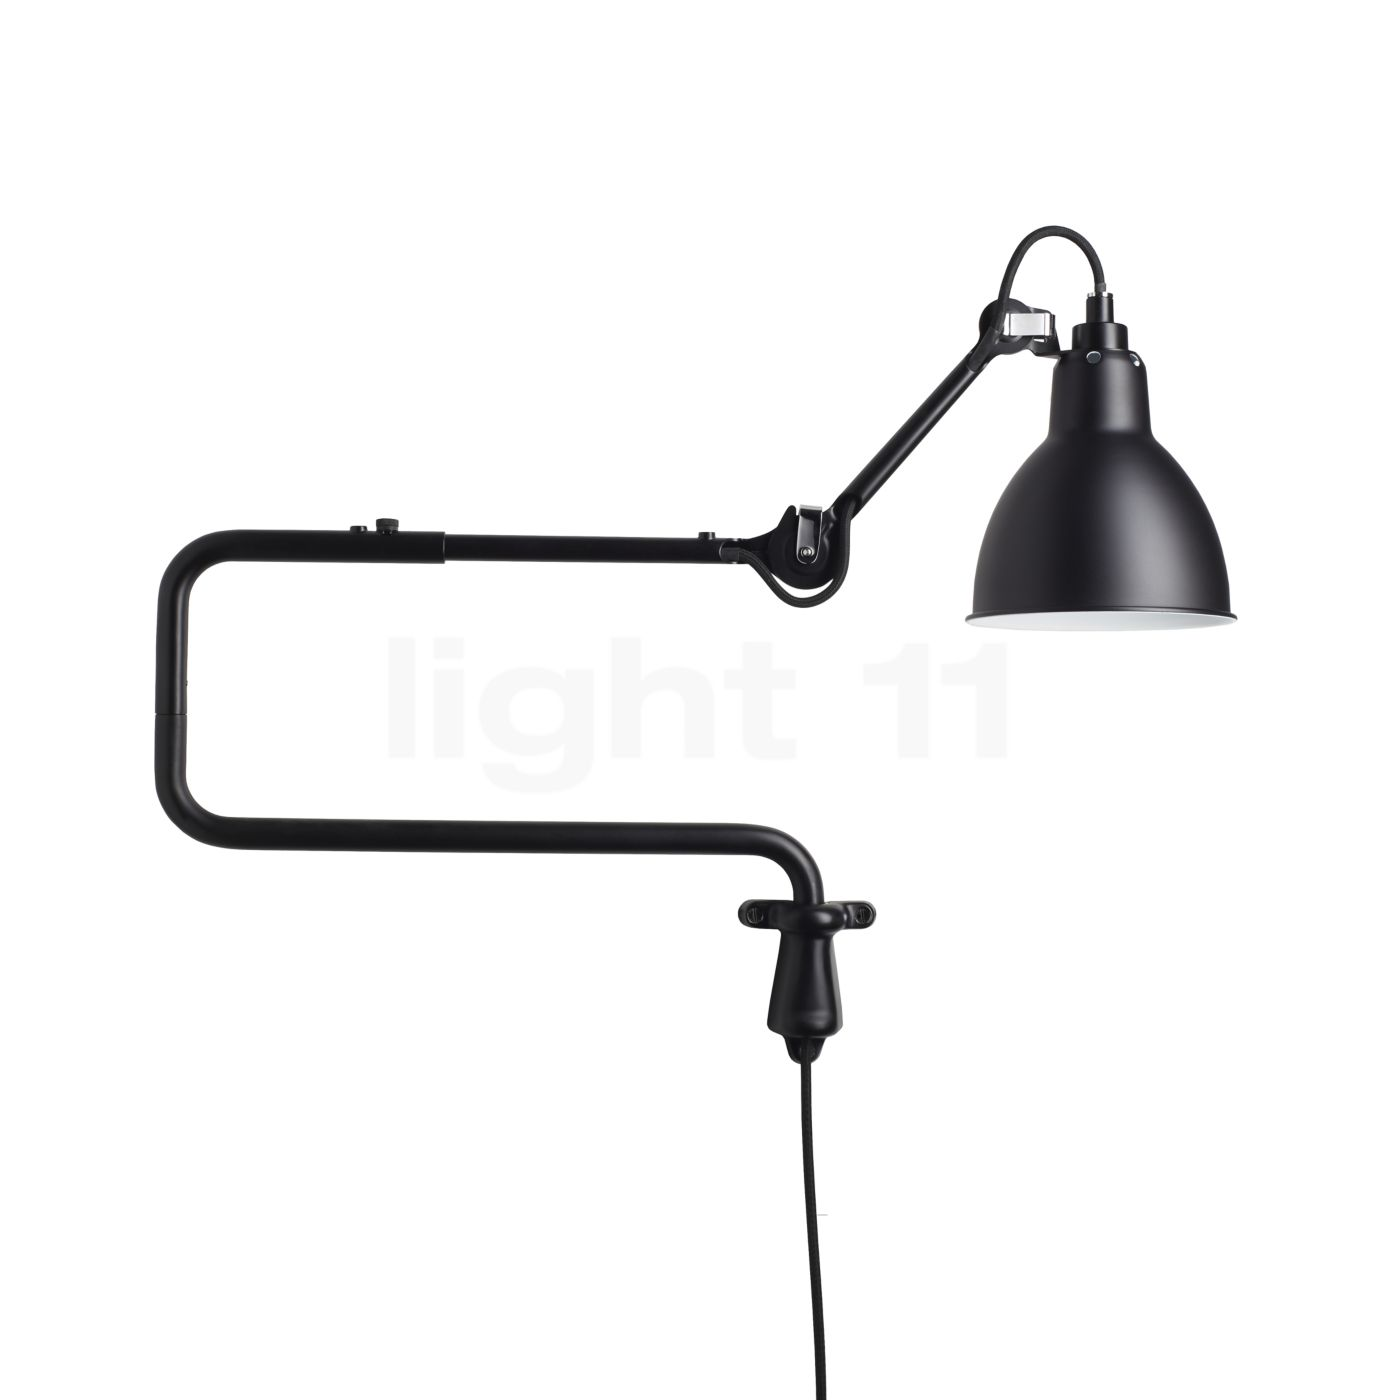 DCW Lampe Gras No 303 Wall Light Decentralised Wall Lights